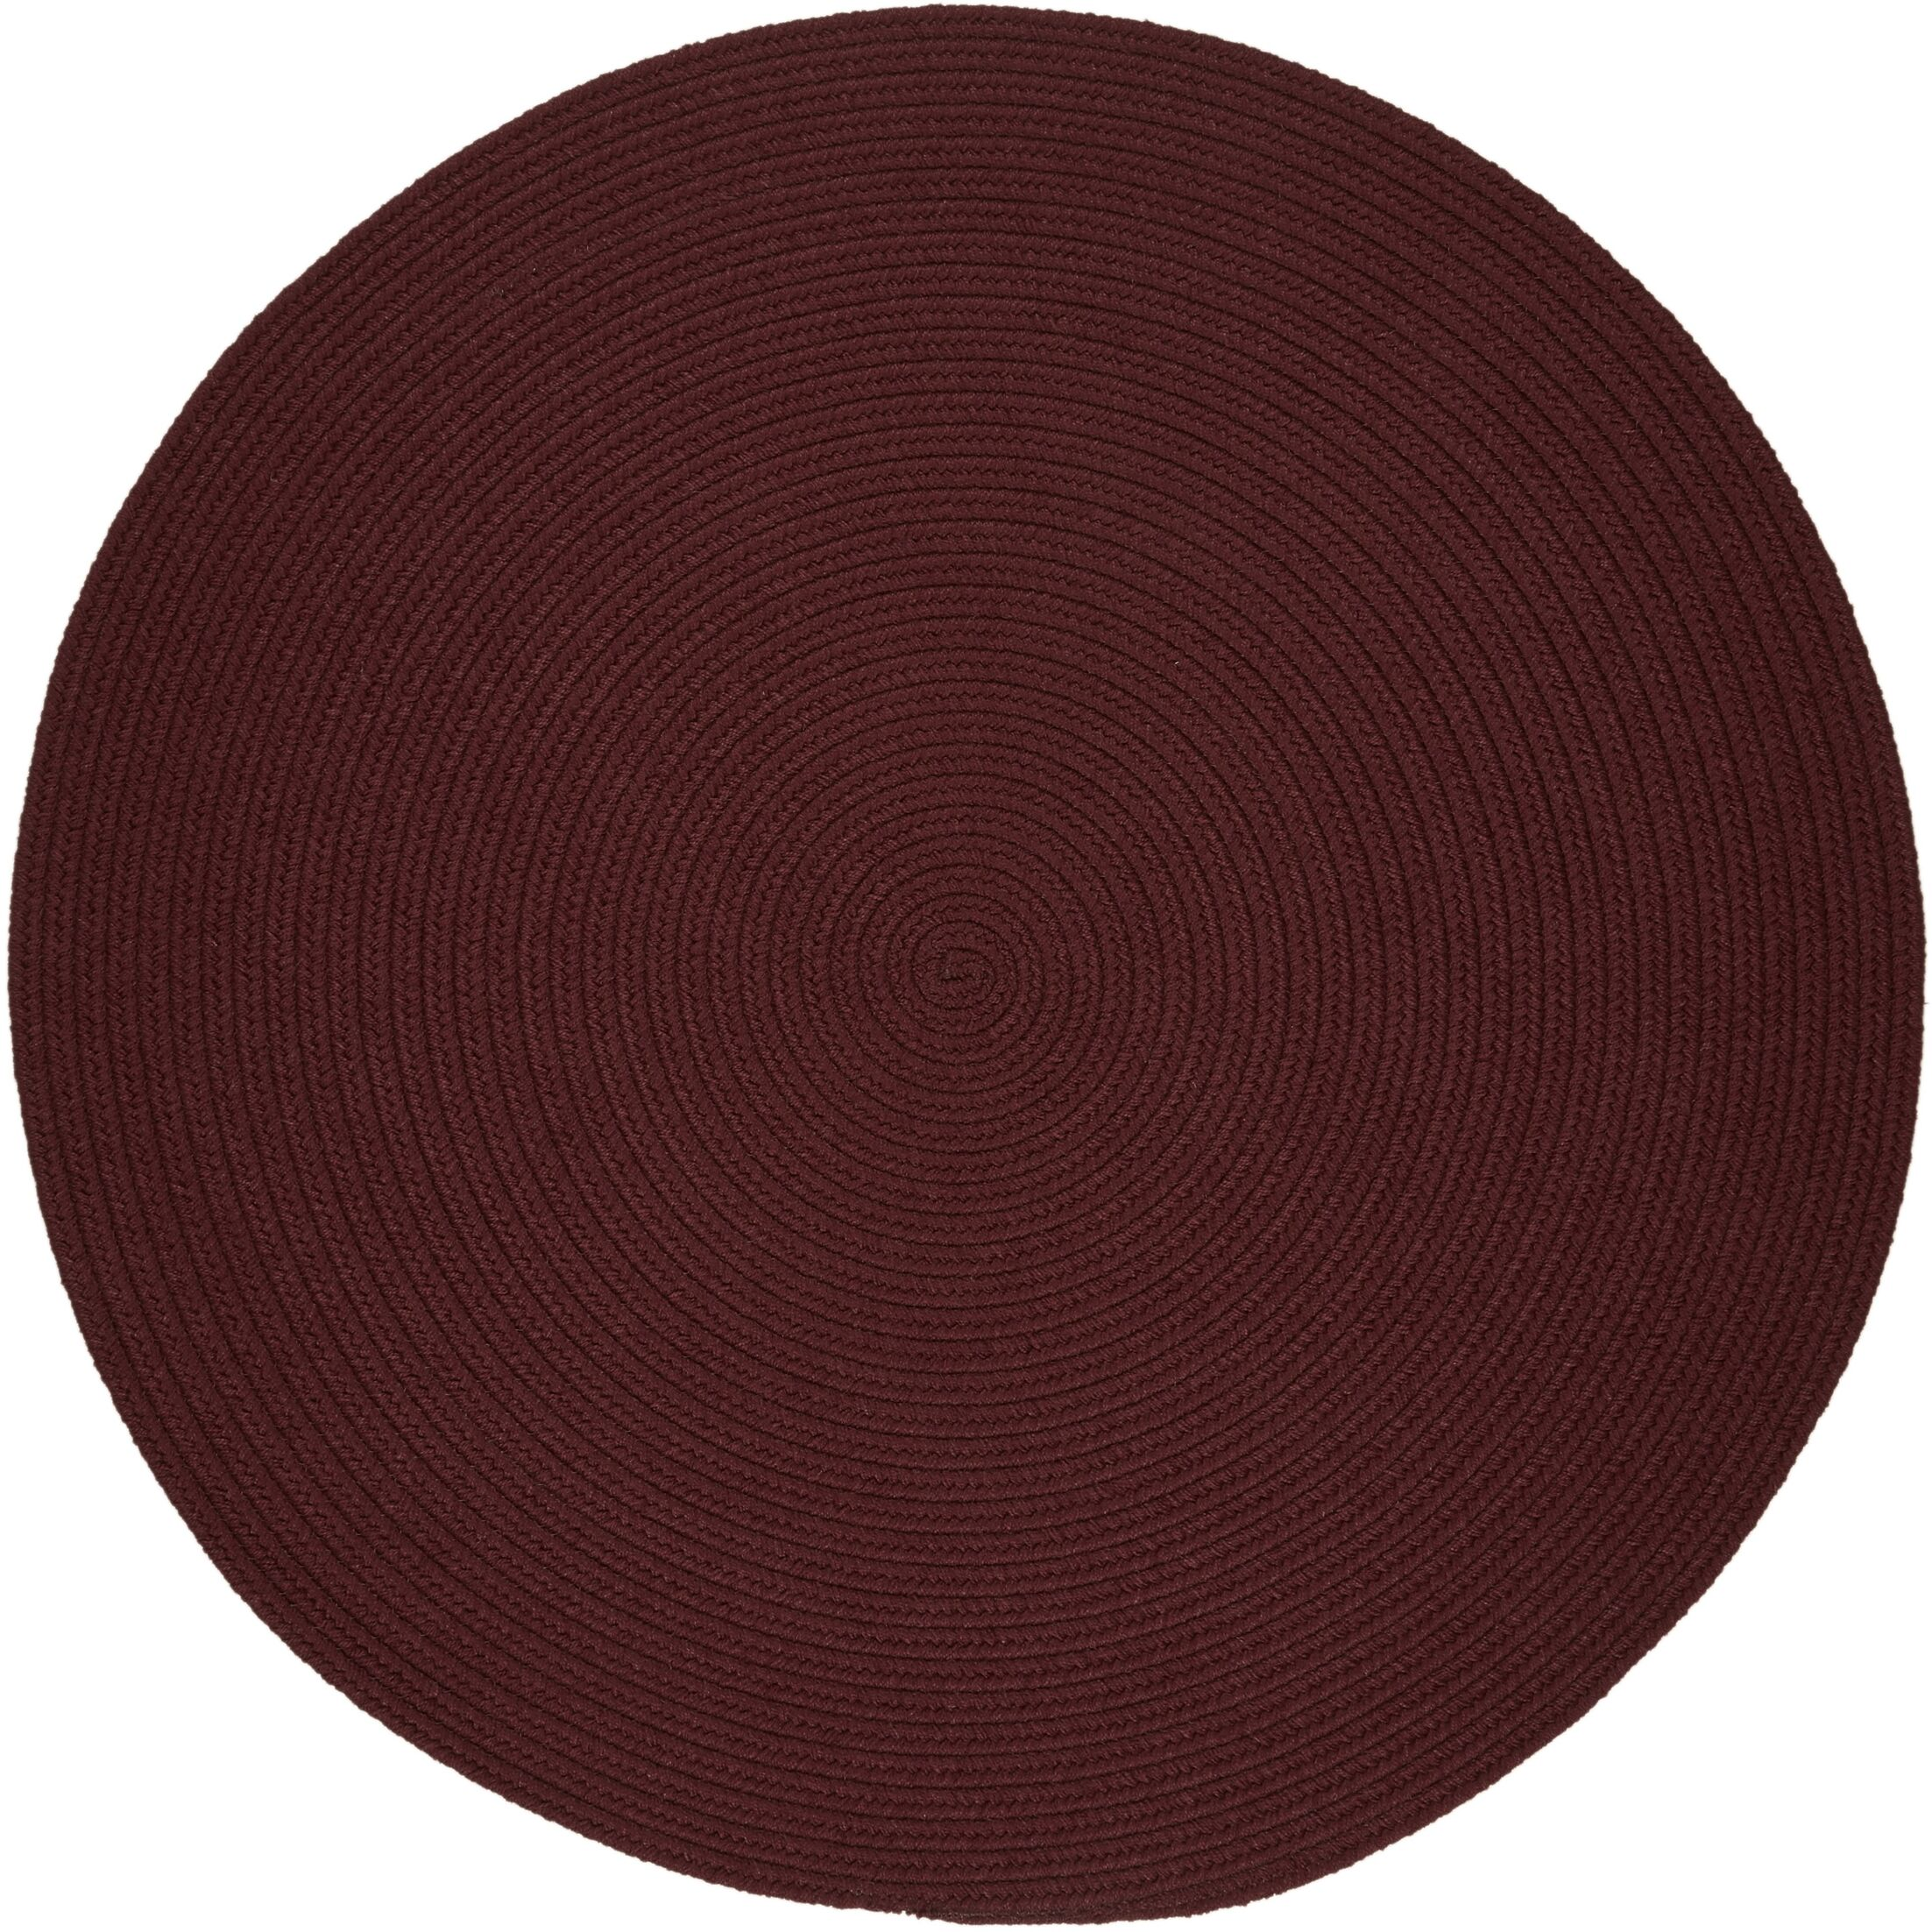 Handmade Burgundy Indoor/Outdoor Area Rug Rug Size: Round 6'